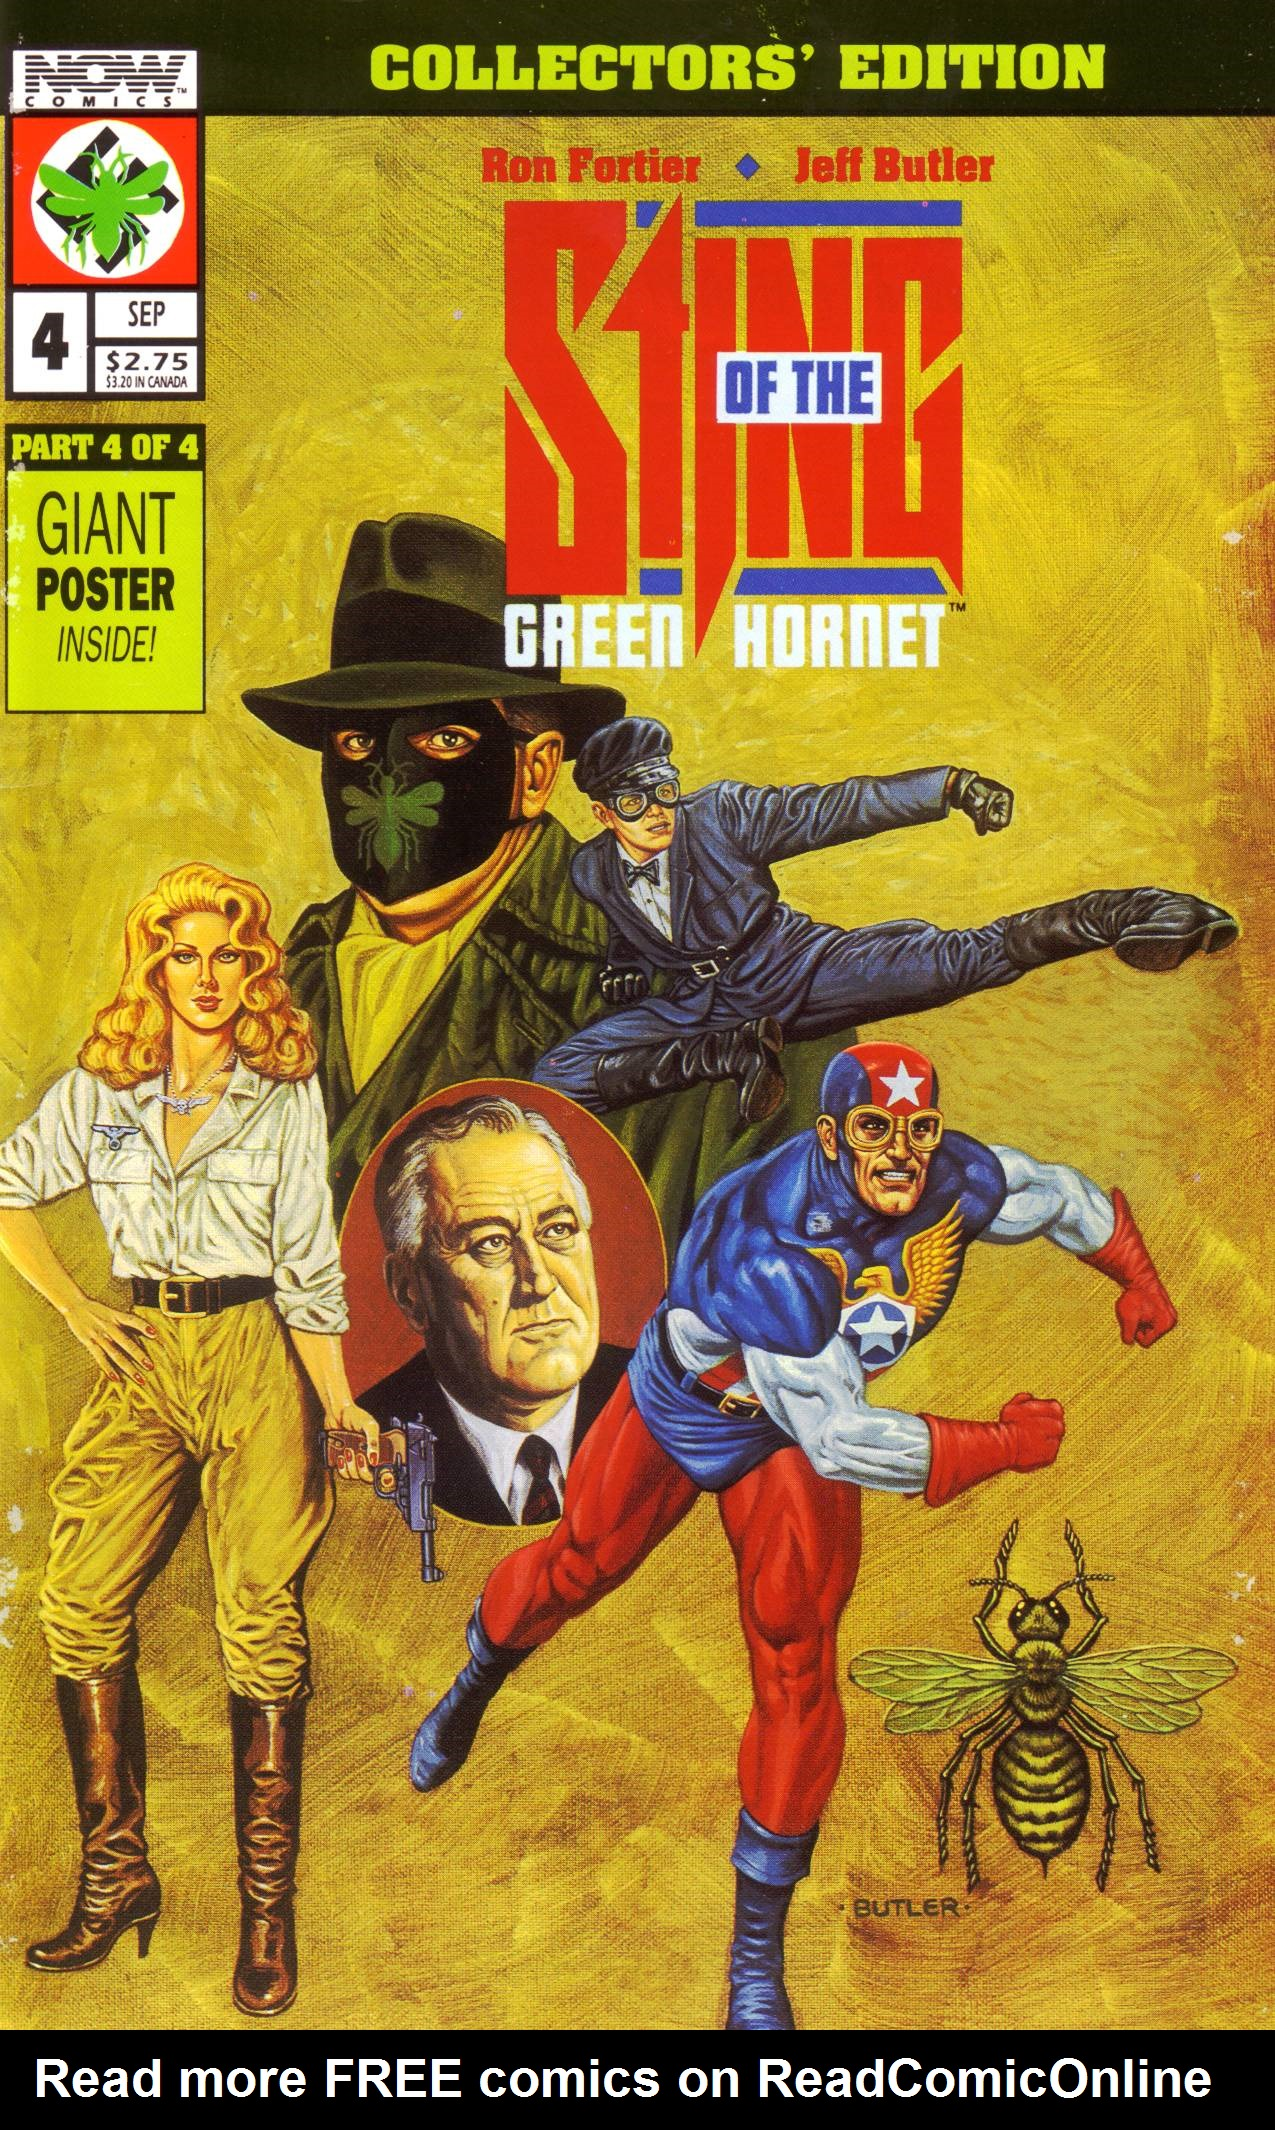 Read online Sting of The Green Hornet comic -  Issue #4 - 1